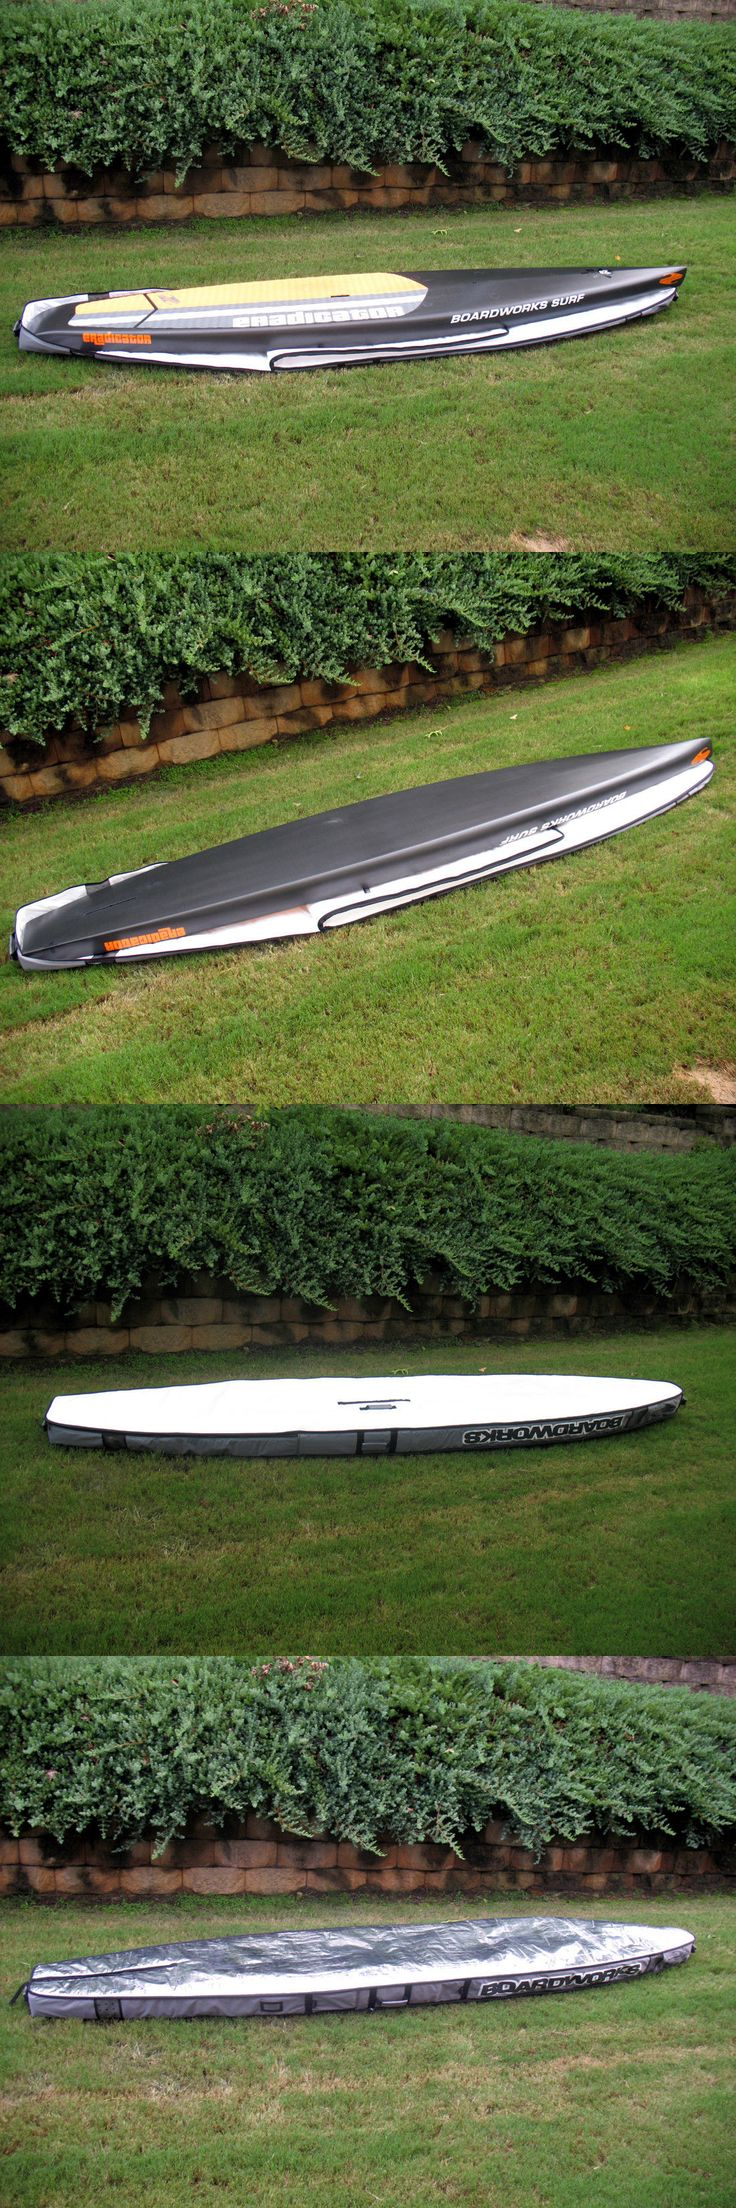 Stand Up Paddleboards 177504: Boardworks 2015 Eradicator 12 6 Carbon Race Stand Up Paddleboard Sup Accessory -> BUY IT NOW ONLY: $2000 on eBay!